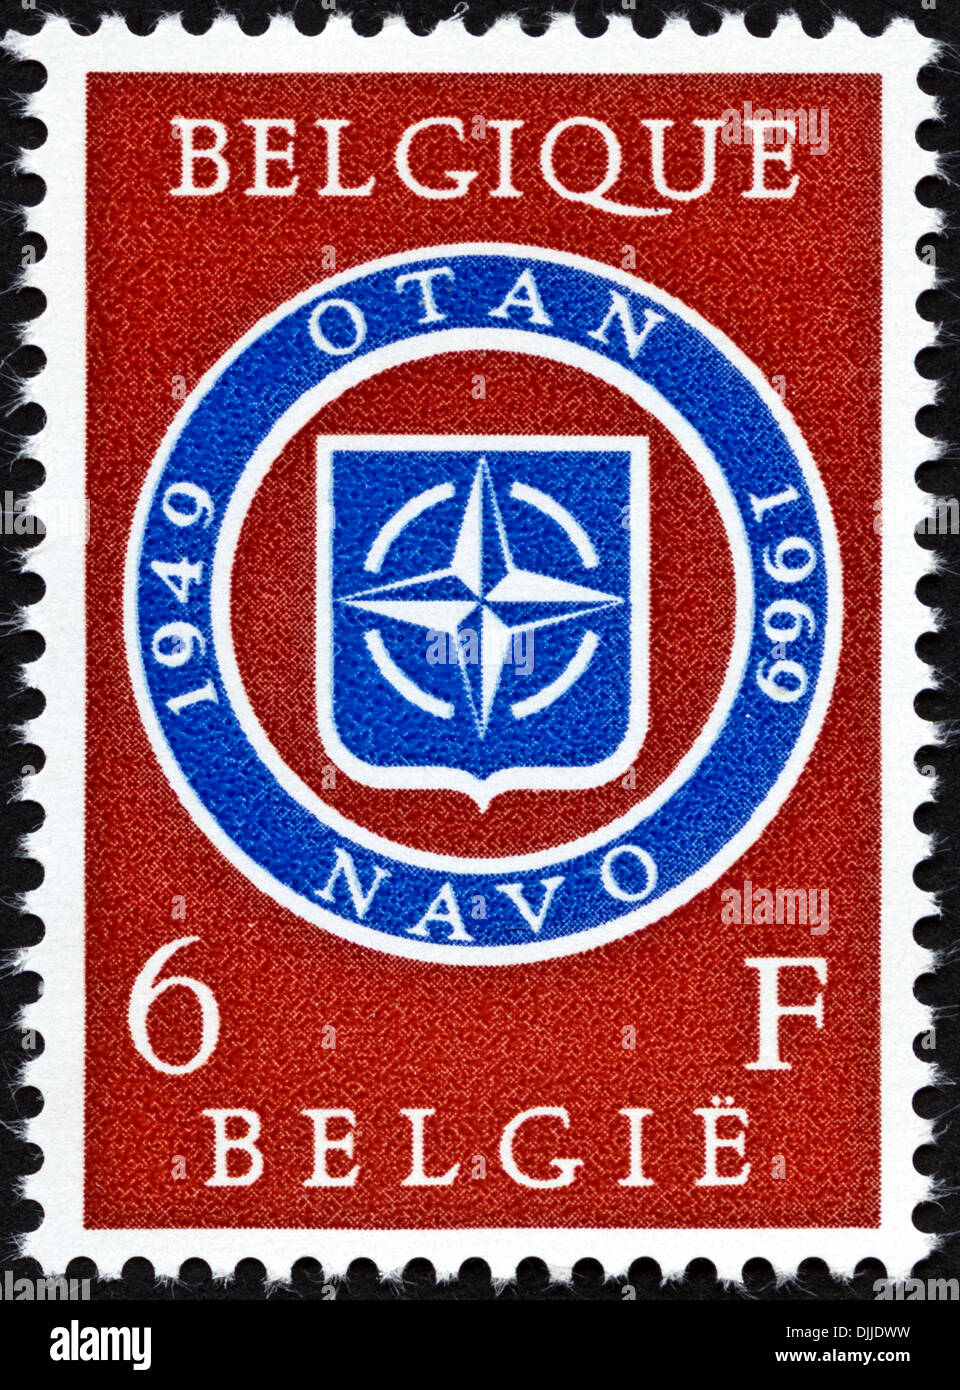 postage stamp Belgium 6F featuring 20th anniversary of NATO 1949 - 1969 issued 1969 - Stock Image